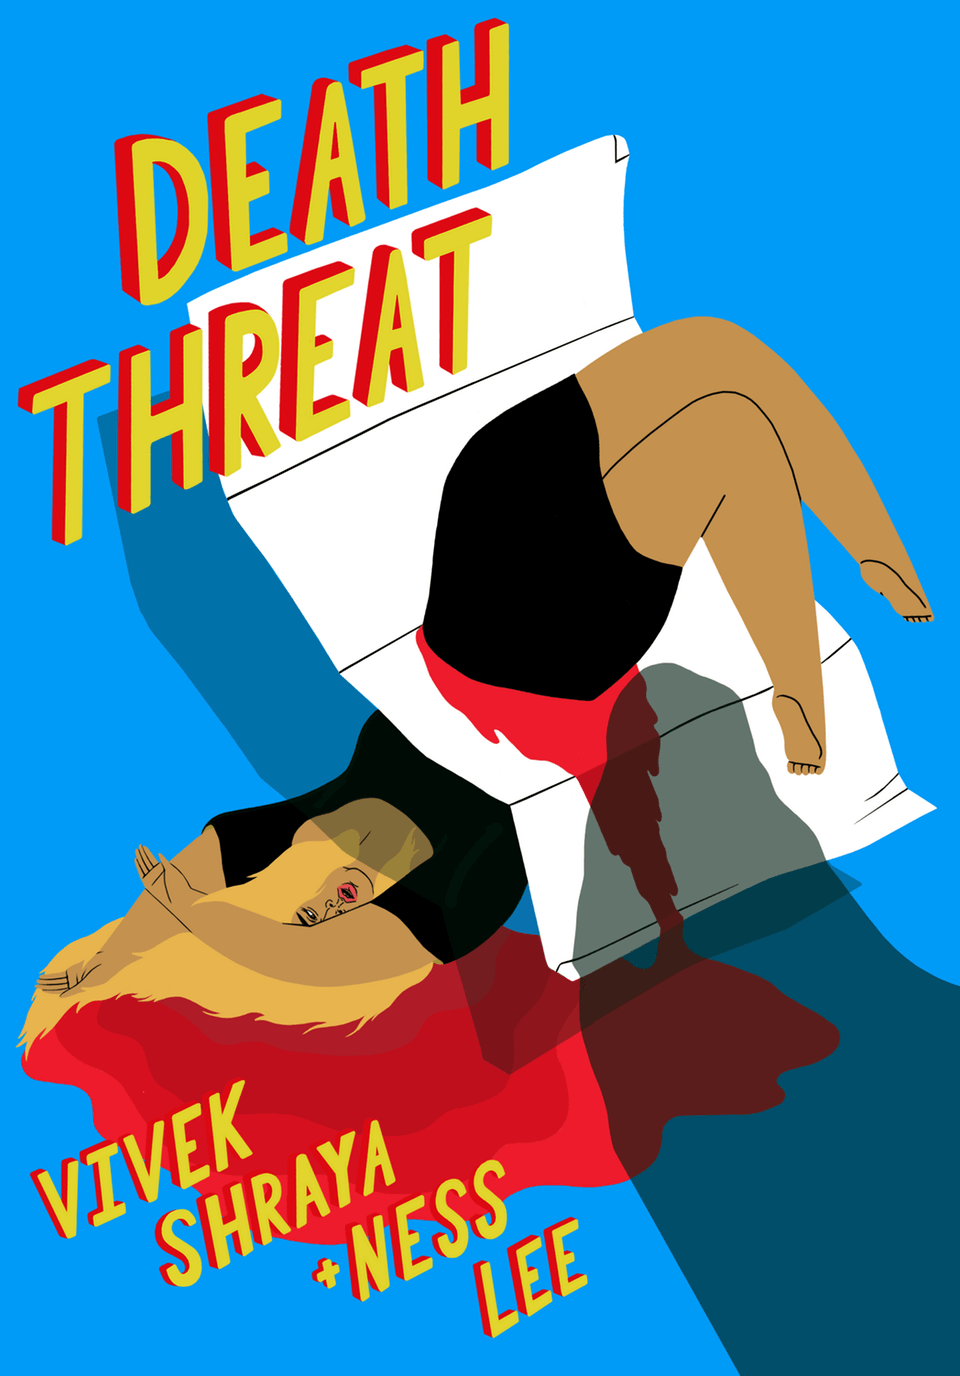 A surreal illustration of a woman being cut in half by a piece of mail, lying in a pool of blood while an indistinct shadow looms from out of frame. Hand-lettered text reads 'Death Threat. Vivek Shraya and Ness Lee.'